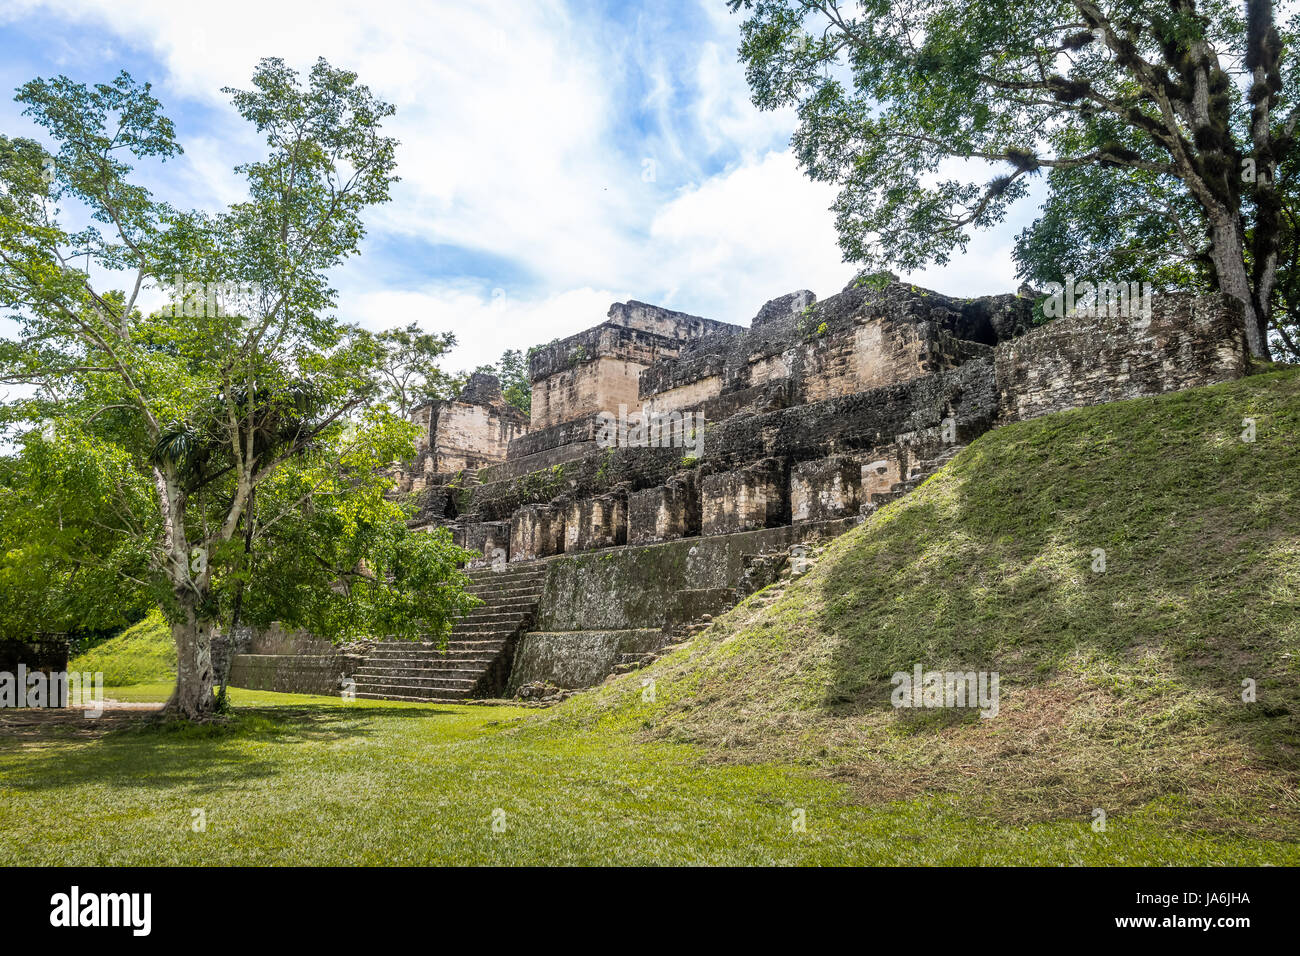 Mayan Ruins at Tikal National Park - Guatemala - Stock Image